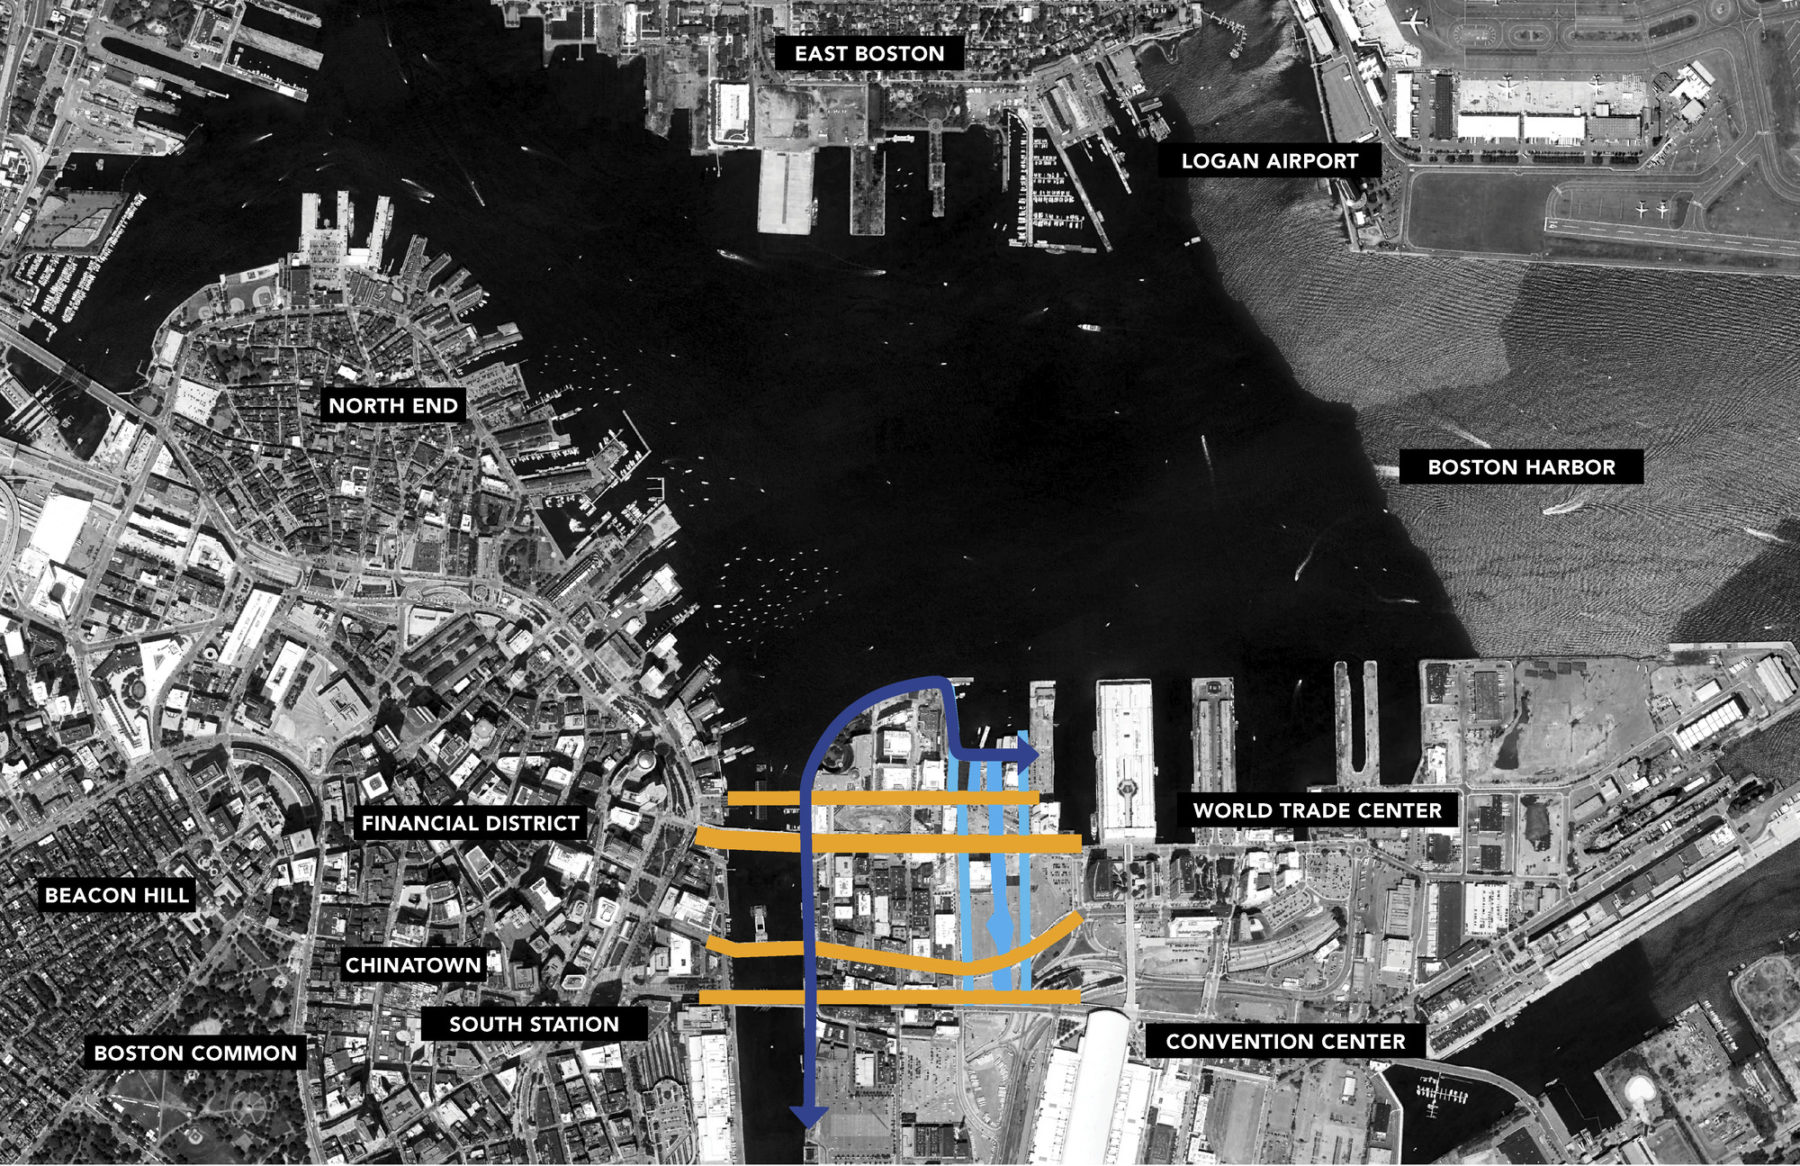 Diagram of seaport neighborhood